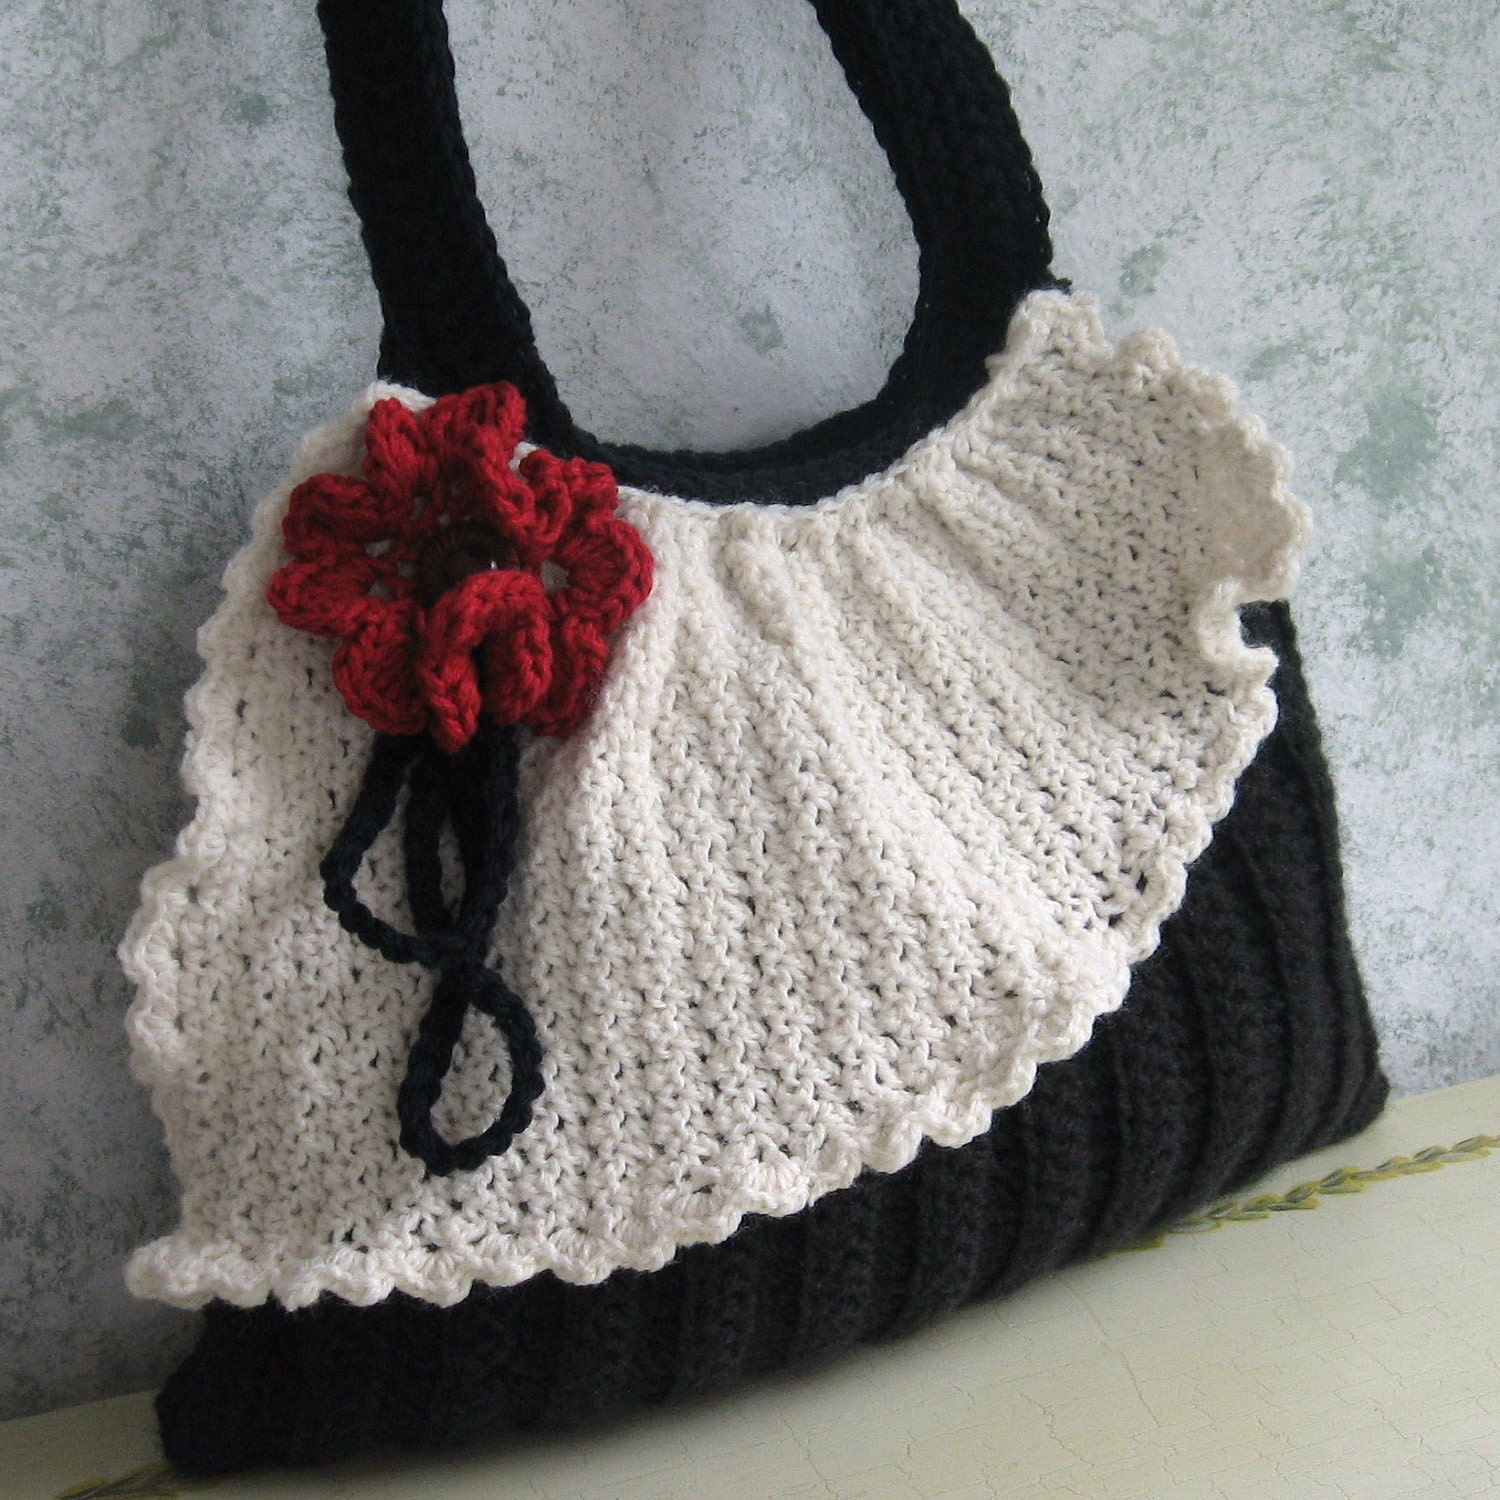 Crocheted Handbag : Crochet Purse Pattern Pleated Bag With Drape And by kalliedesigns